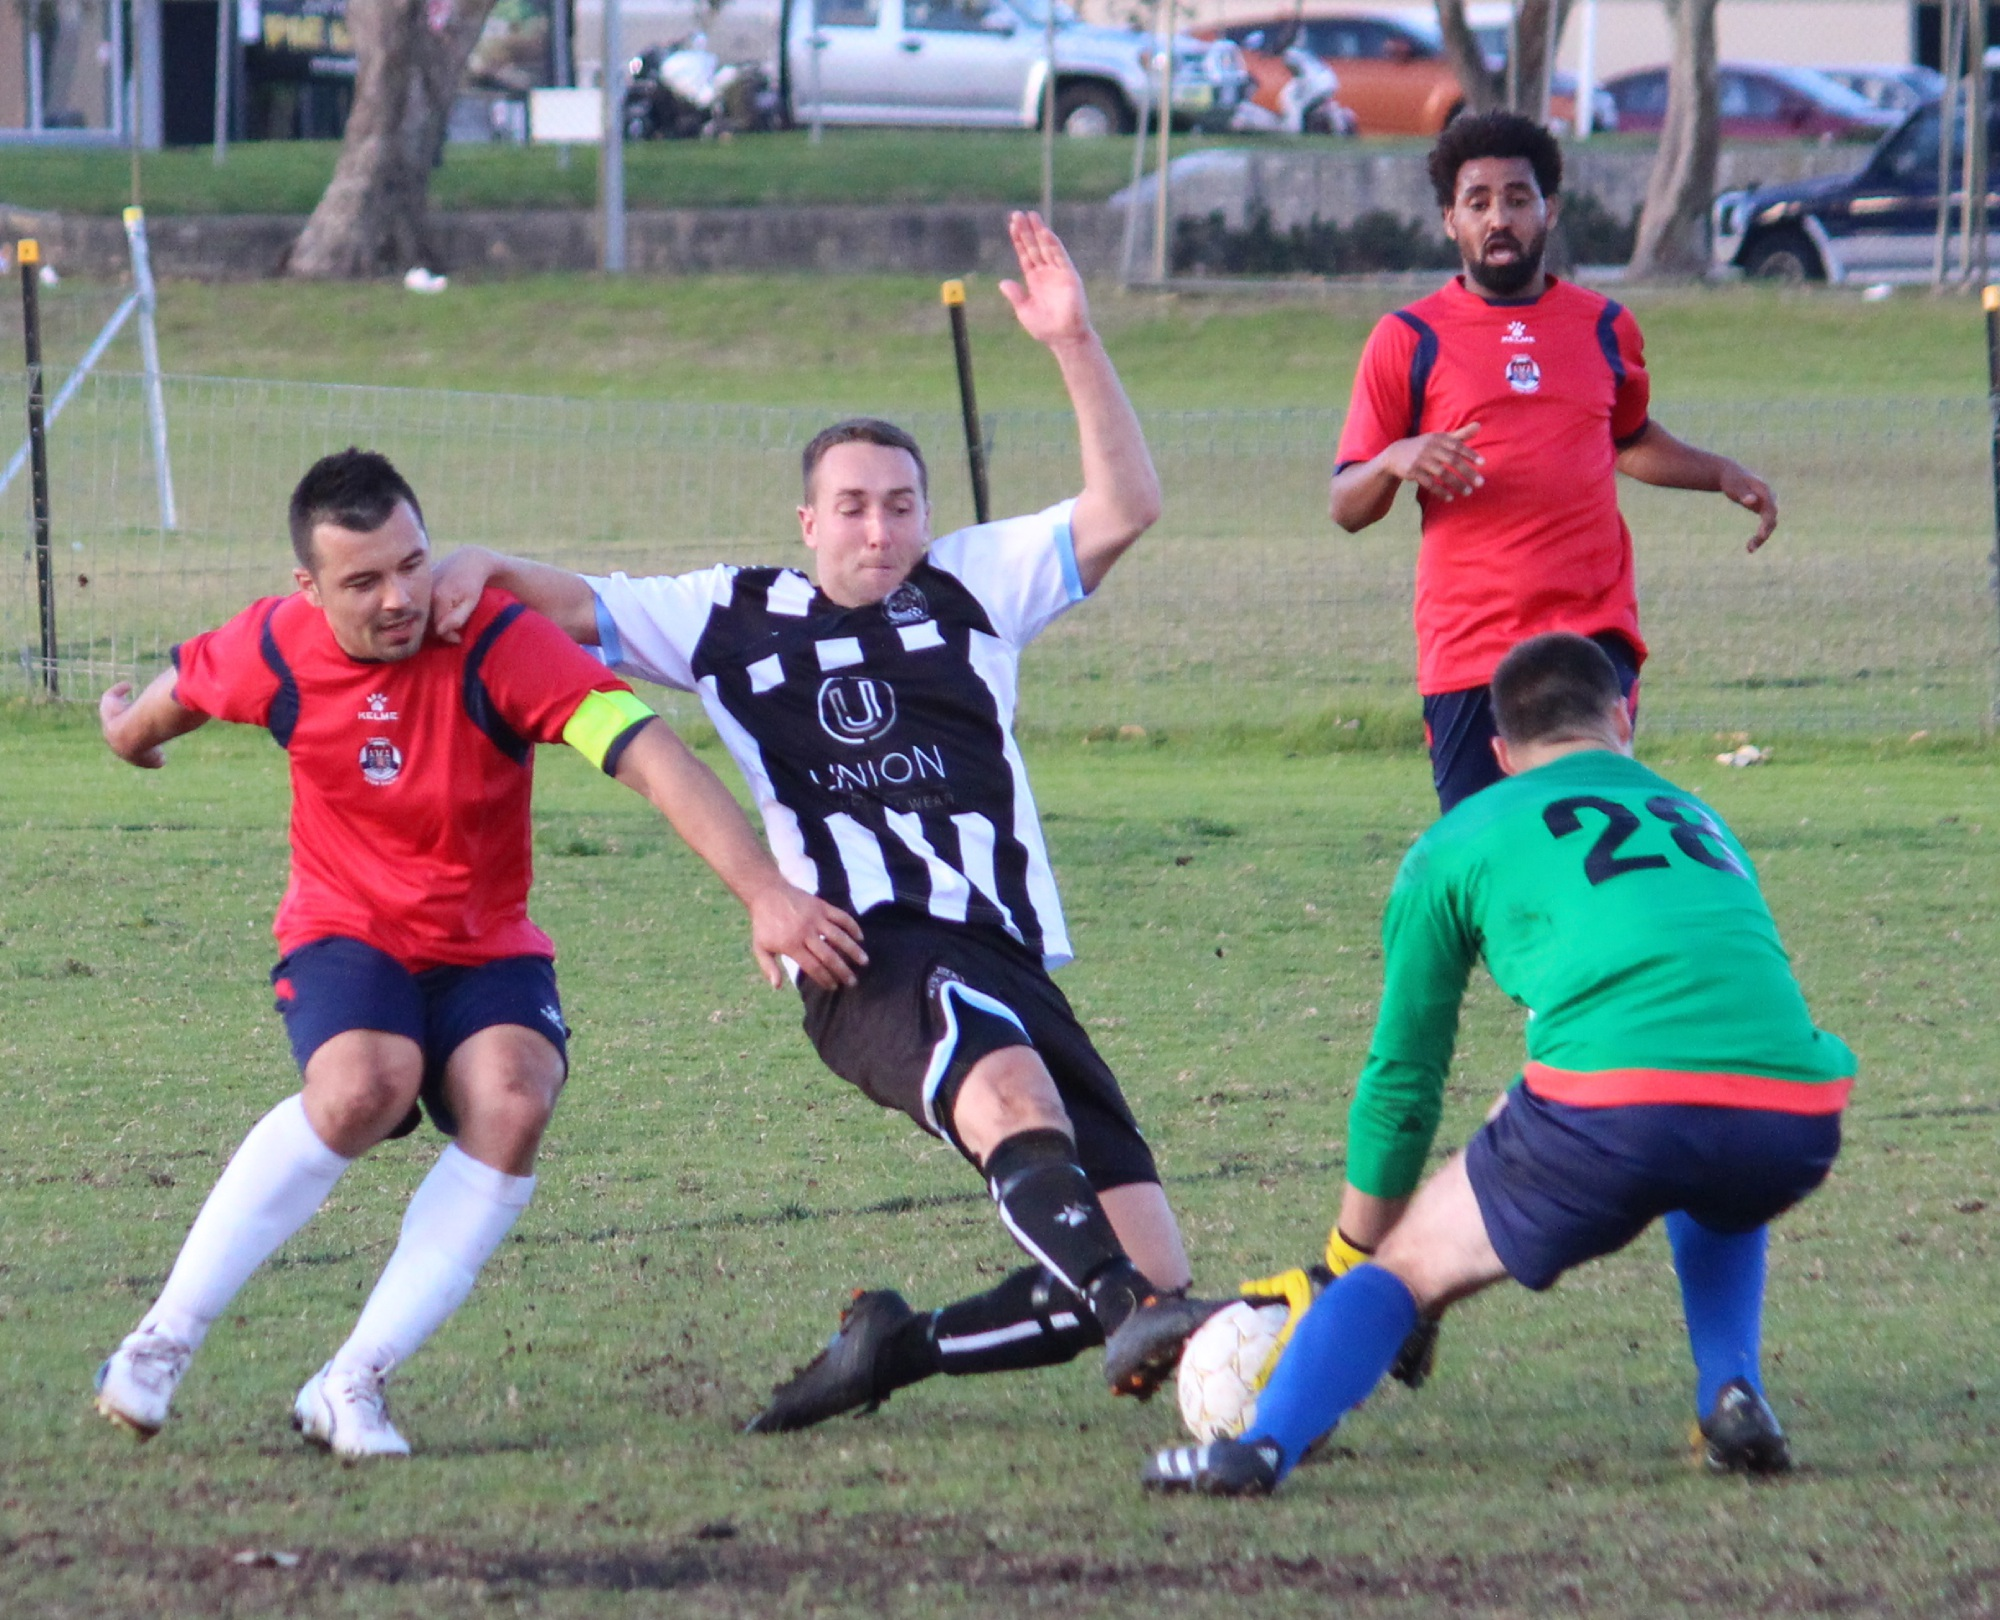 Soccer: Mandurah City maintains lead with 3-0 win over Dianella